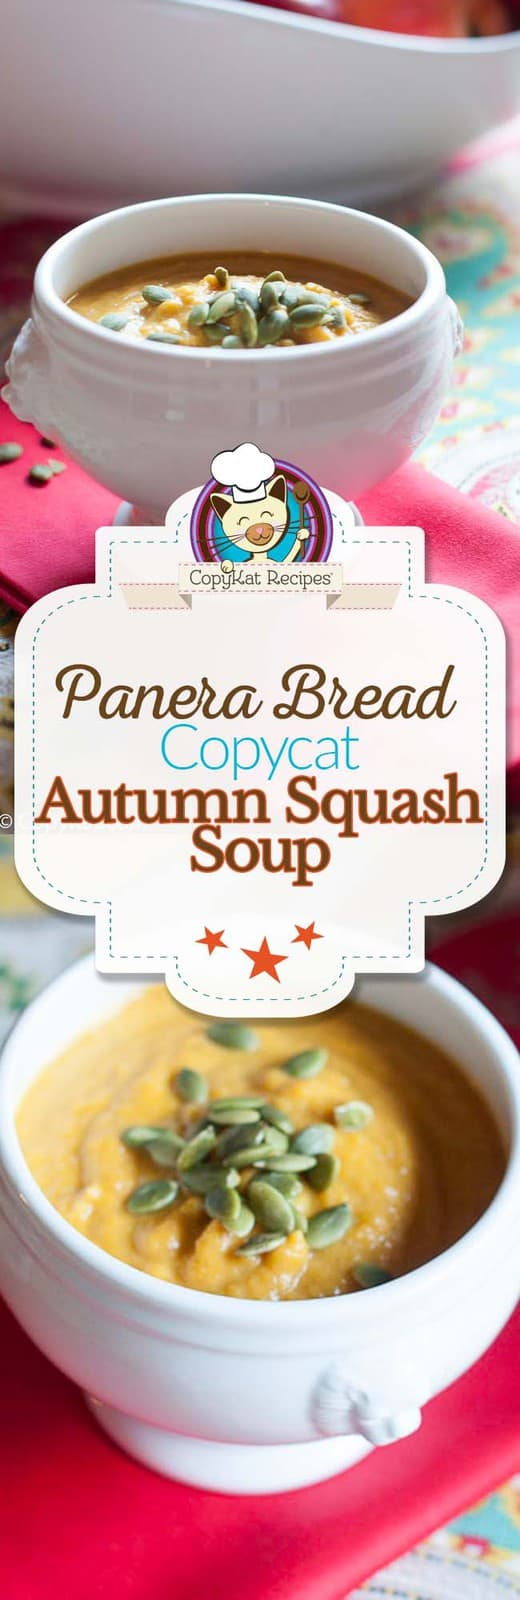 Try making your own copycat version of the Panera Bread Autumn Squash Soup.